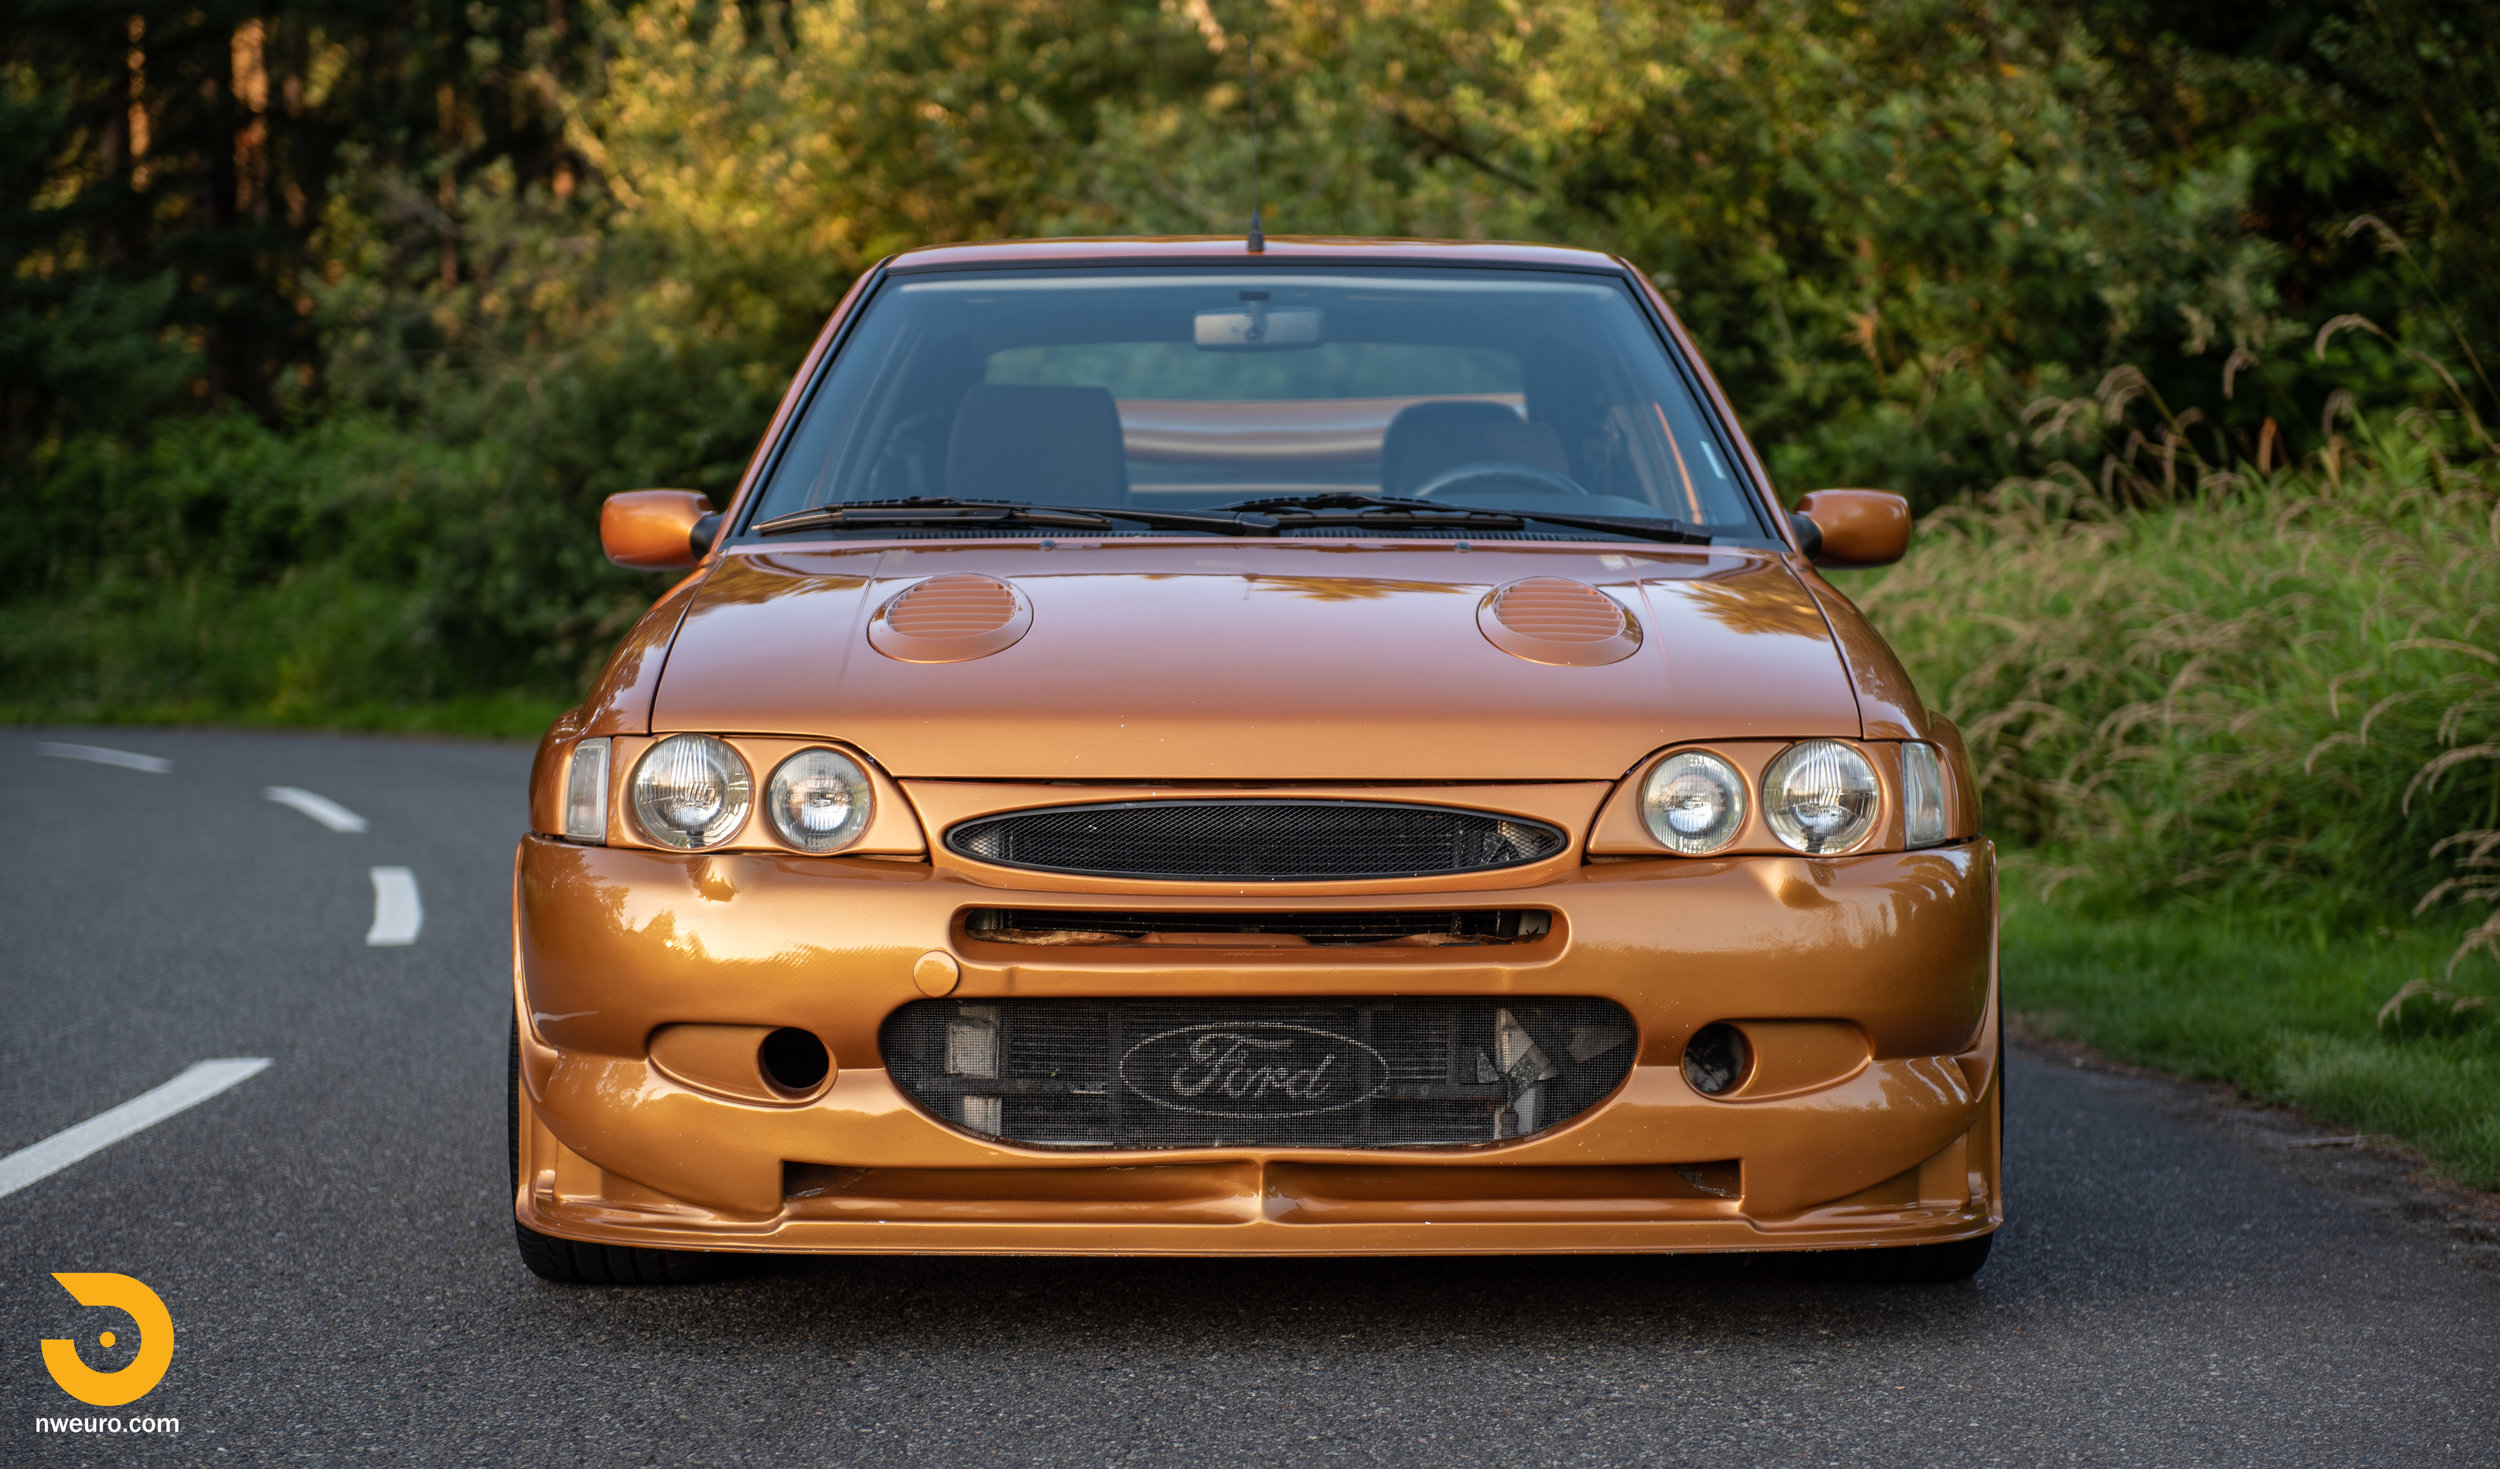 1995 Ford Escort Cosworth RS Gold-10.jpg